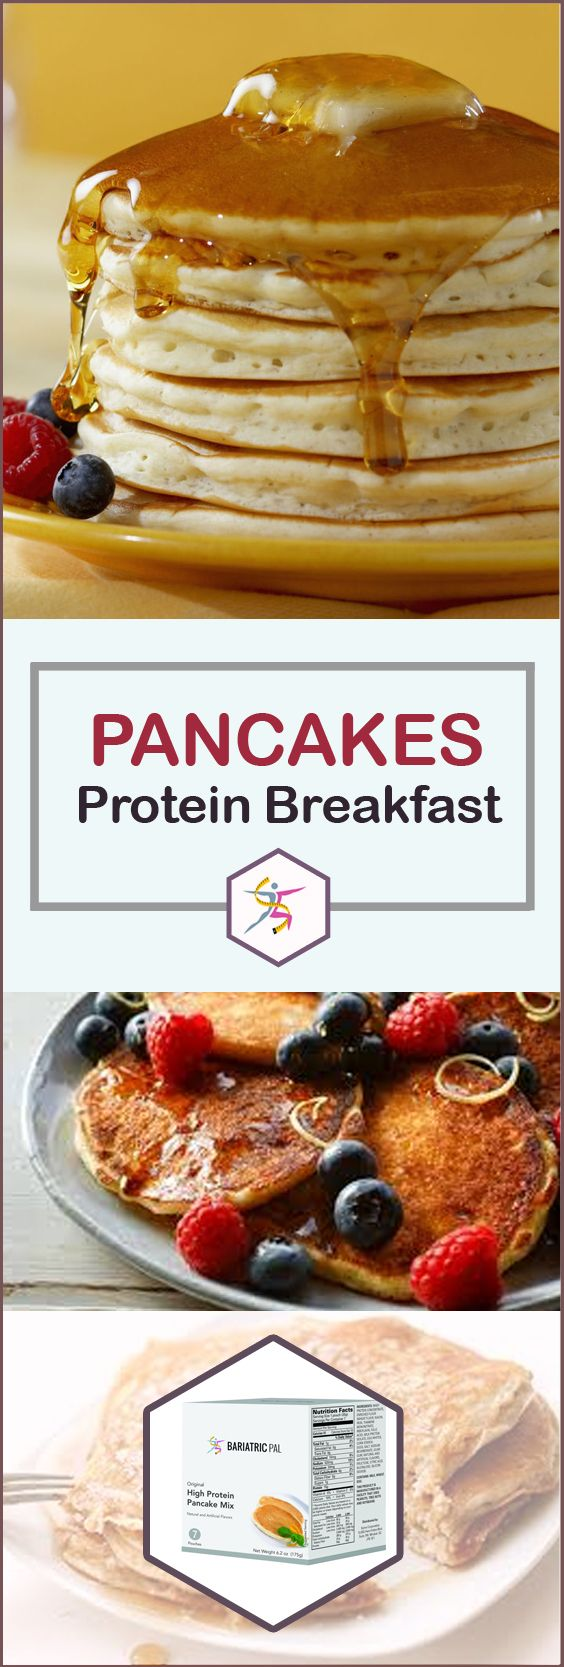 Bariatricpal hot protein breakfast original pancakes original bariatricpal original pancake mix can deliver when you are craving a hot breakfast make a ccuart Gallery